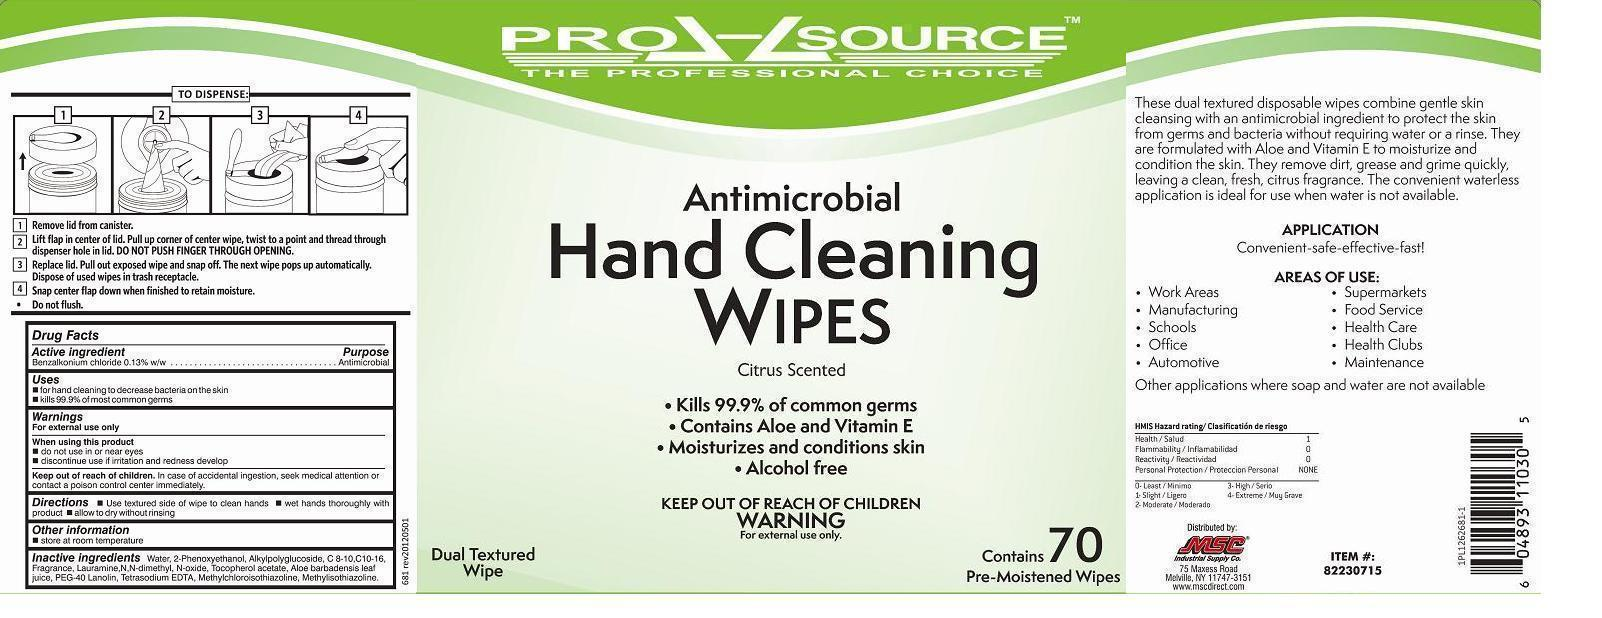 Pro-source Antimicrobial Hand Cleaning Wipes (Benzalkonium Chloride) Cloth [Msc Industrial Supply]